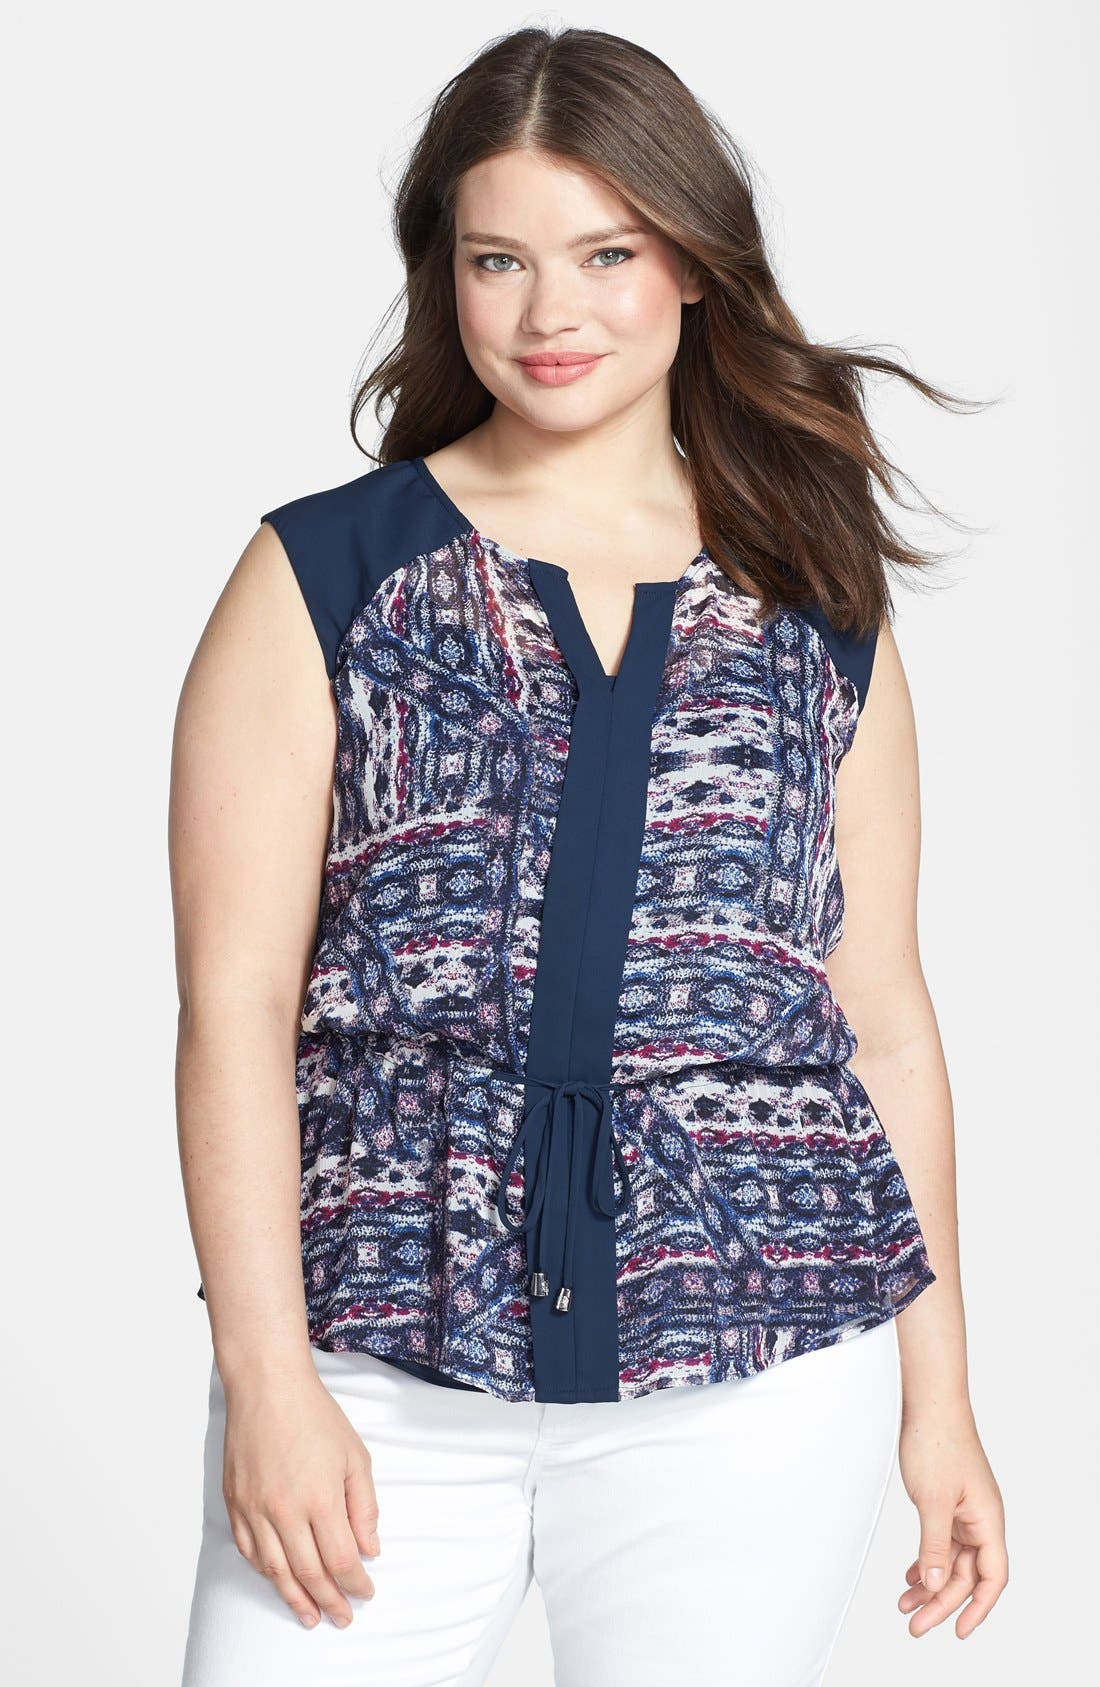 Alternate Image 1 Selected - Vince Camuto 'Tribal' Print Tie Front Blouse (Plus Size)